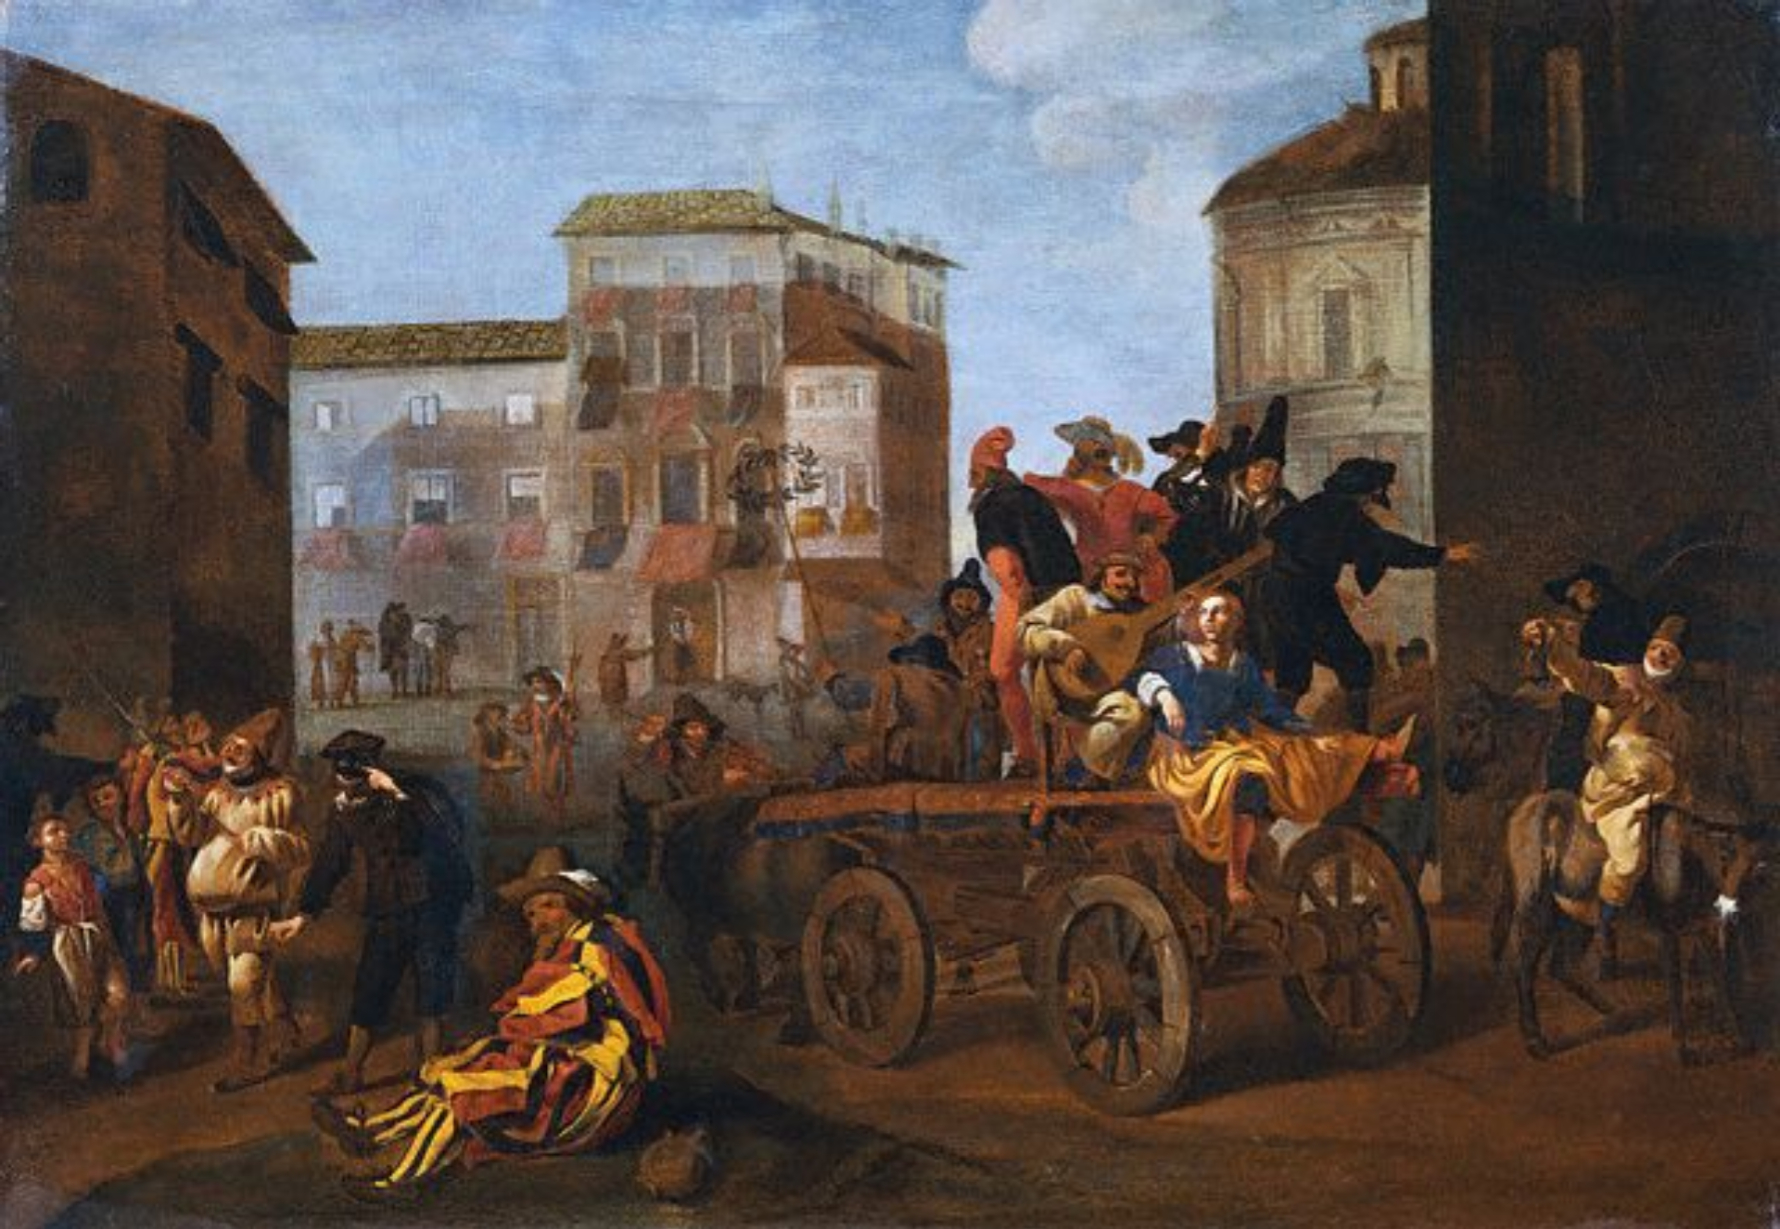 Jan Miel – Actors from the Commedia dell'Arte on a Wagon in a Town Square